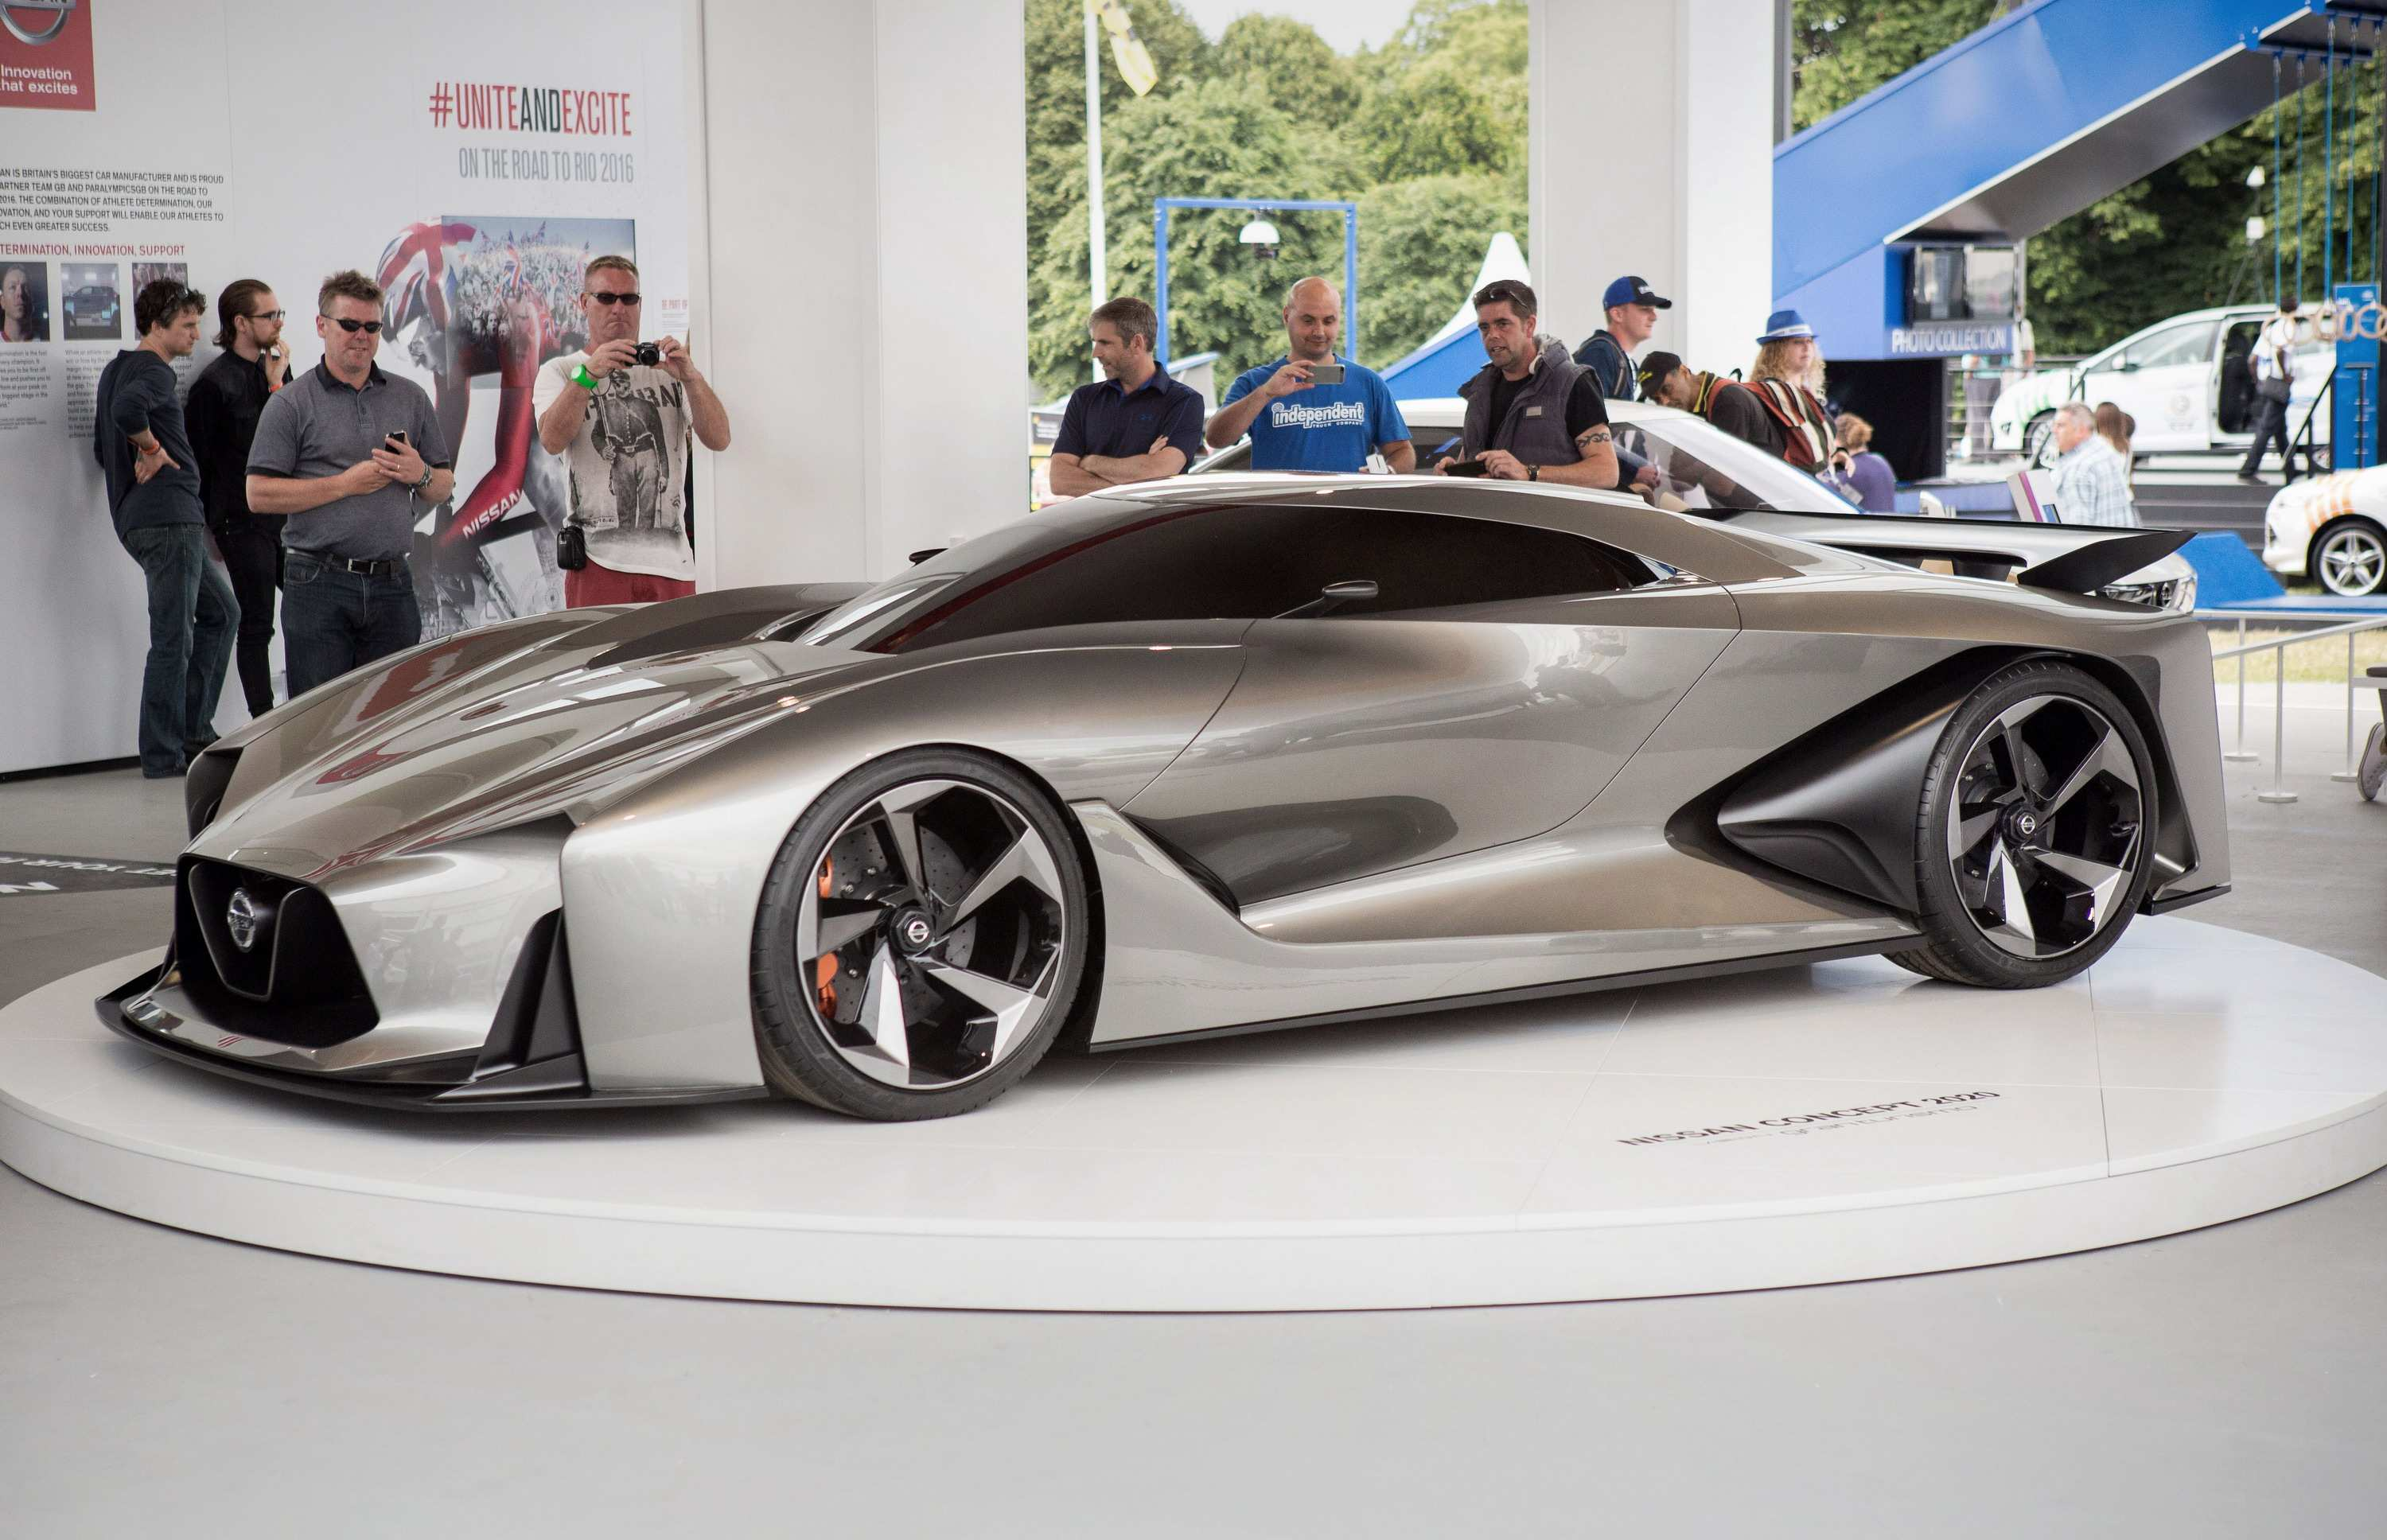 63 New Nissan Concept 2020 Price In India Release Date And Concept